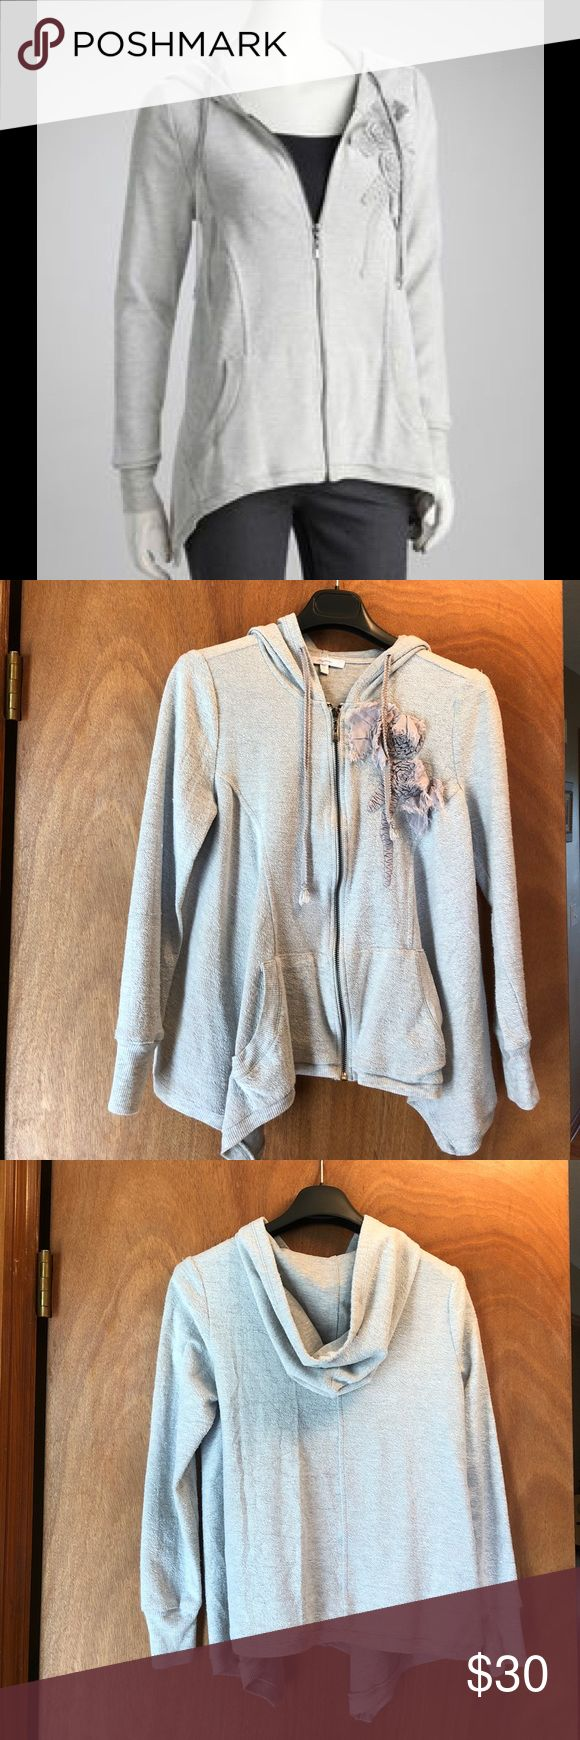 Gorgeous Asymmetrical Hem Hoodie This gorgeous light gray jacket is gently used. Flowers on the front need pressing but overall this is in excellent condition. Listing as a junior small as it fits more like a women's XS/ juniors S Mystree Jackets & Coats